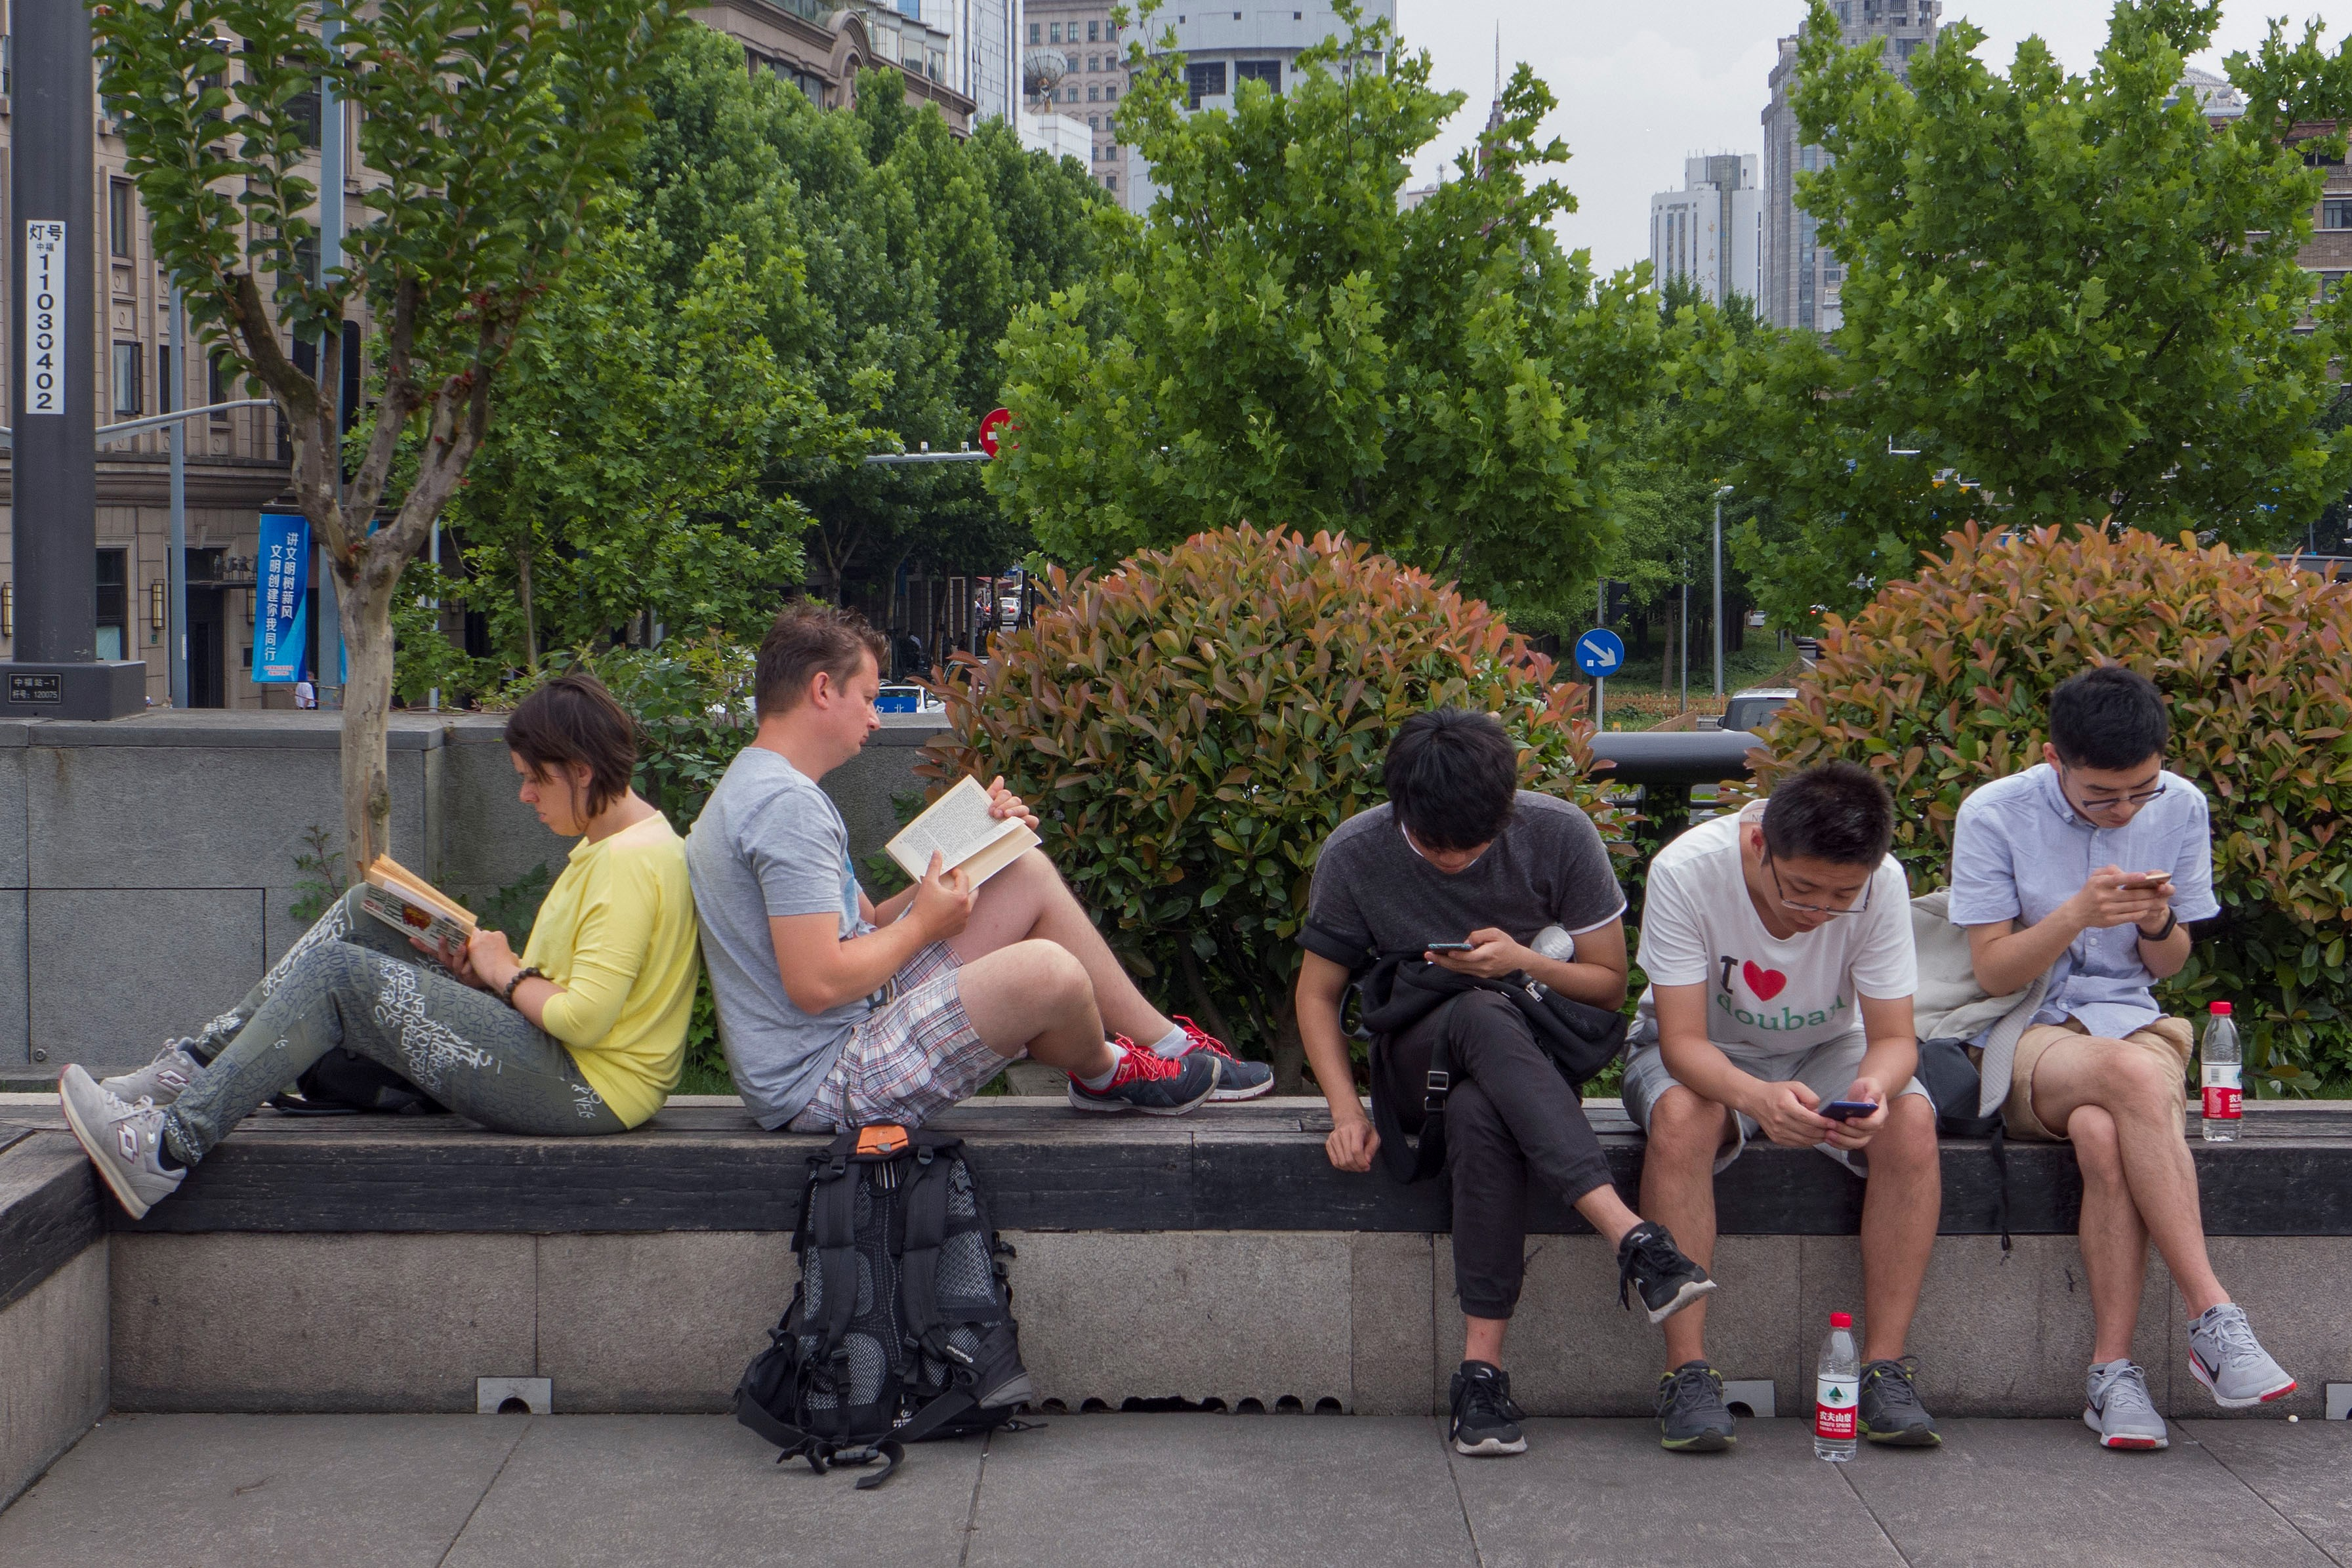 An expat couple read books as three young men browse their mobile phones at a public space in downtown Shanghai. — Wang Rongjiang